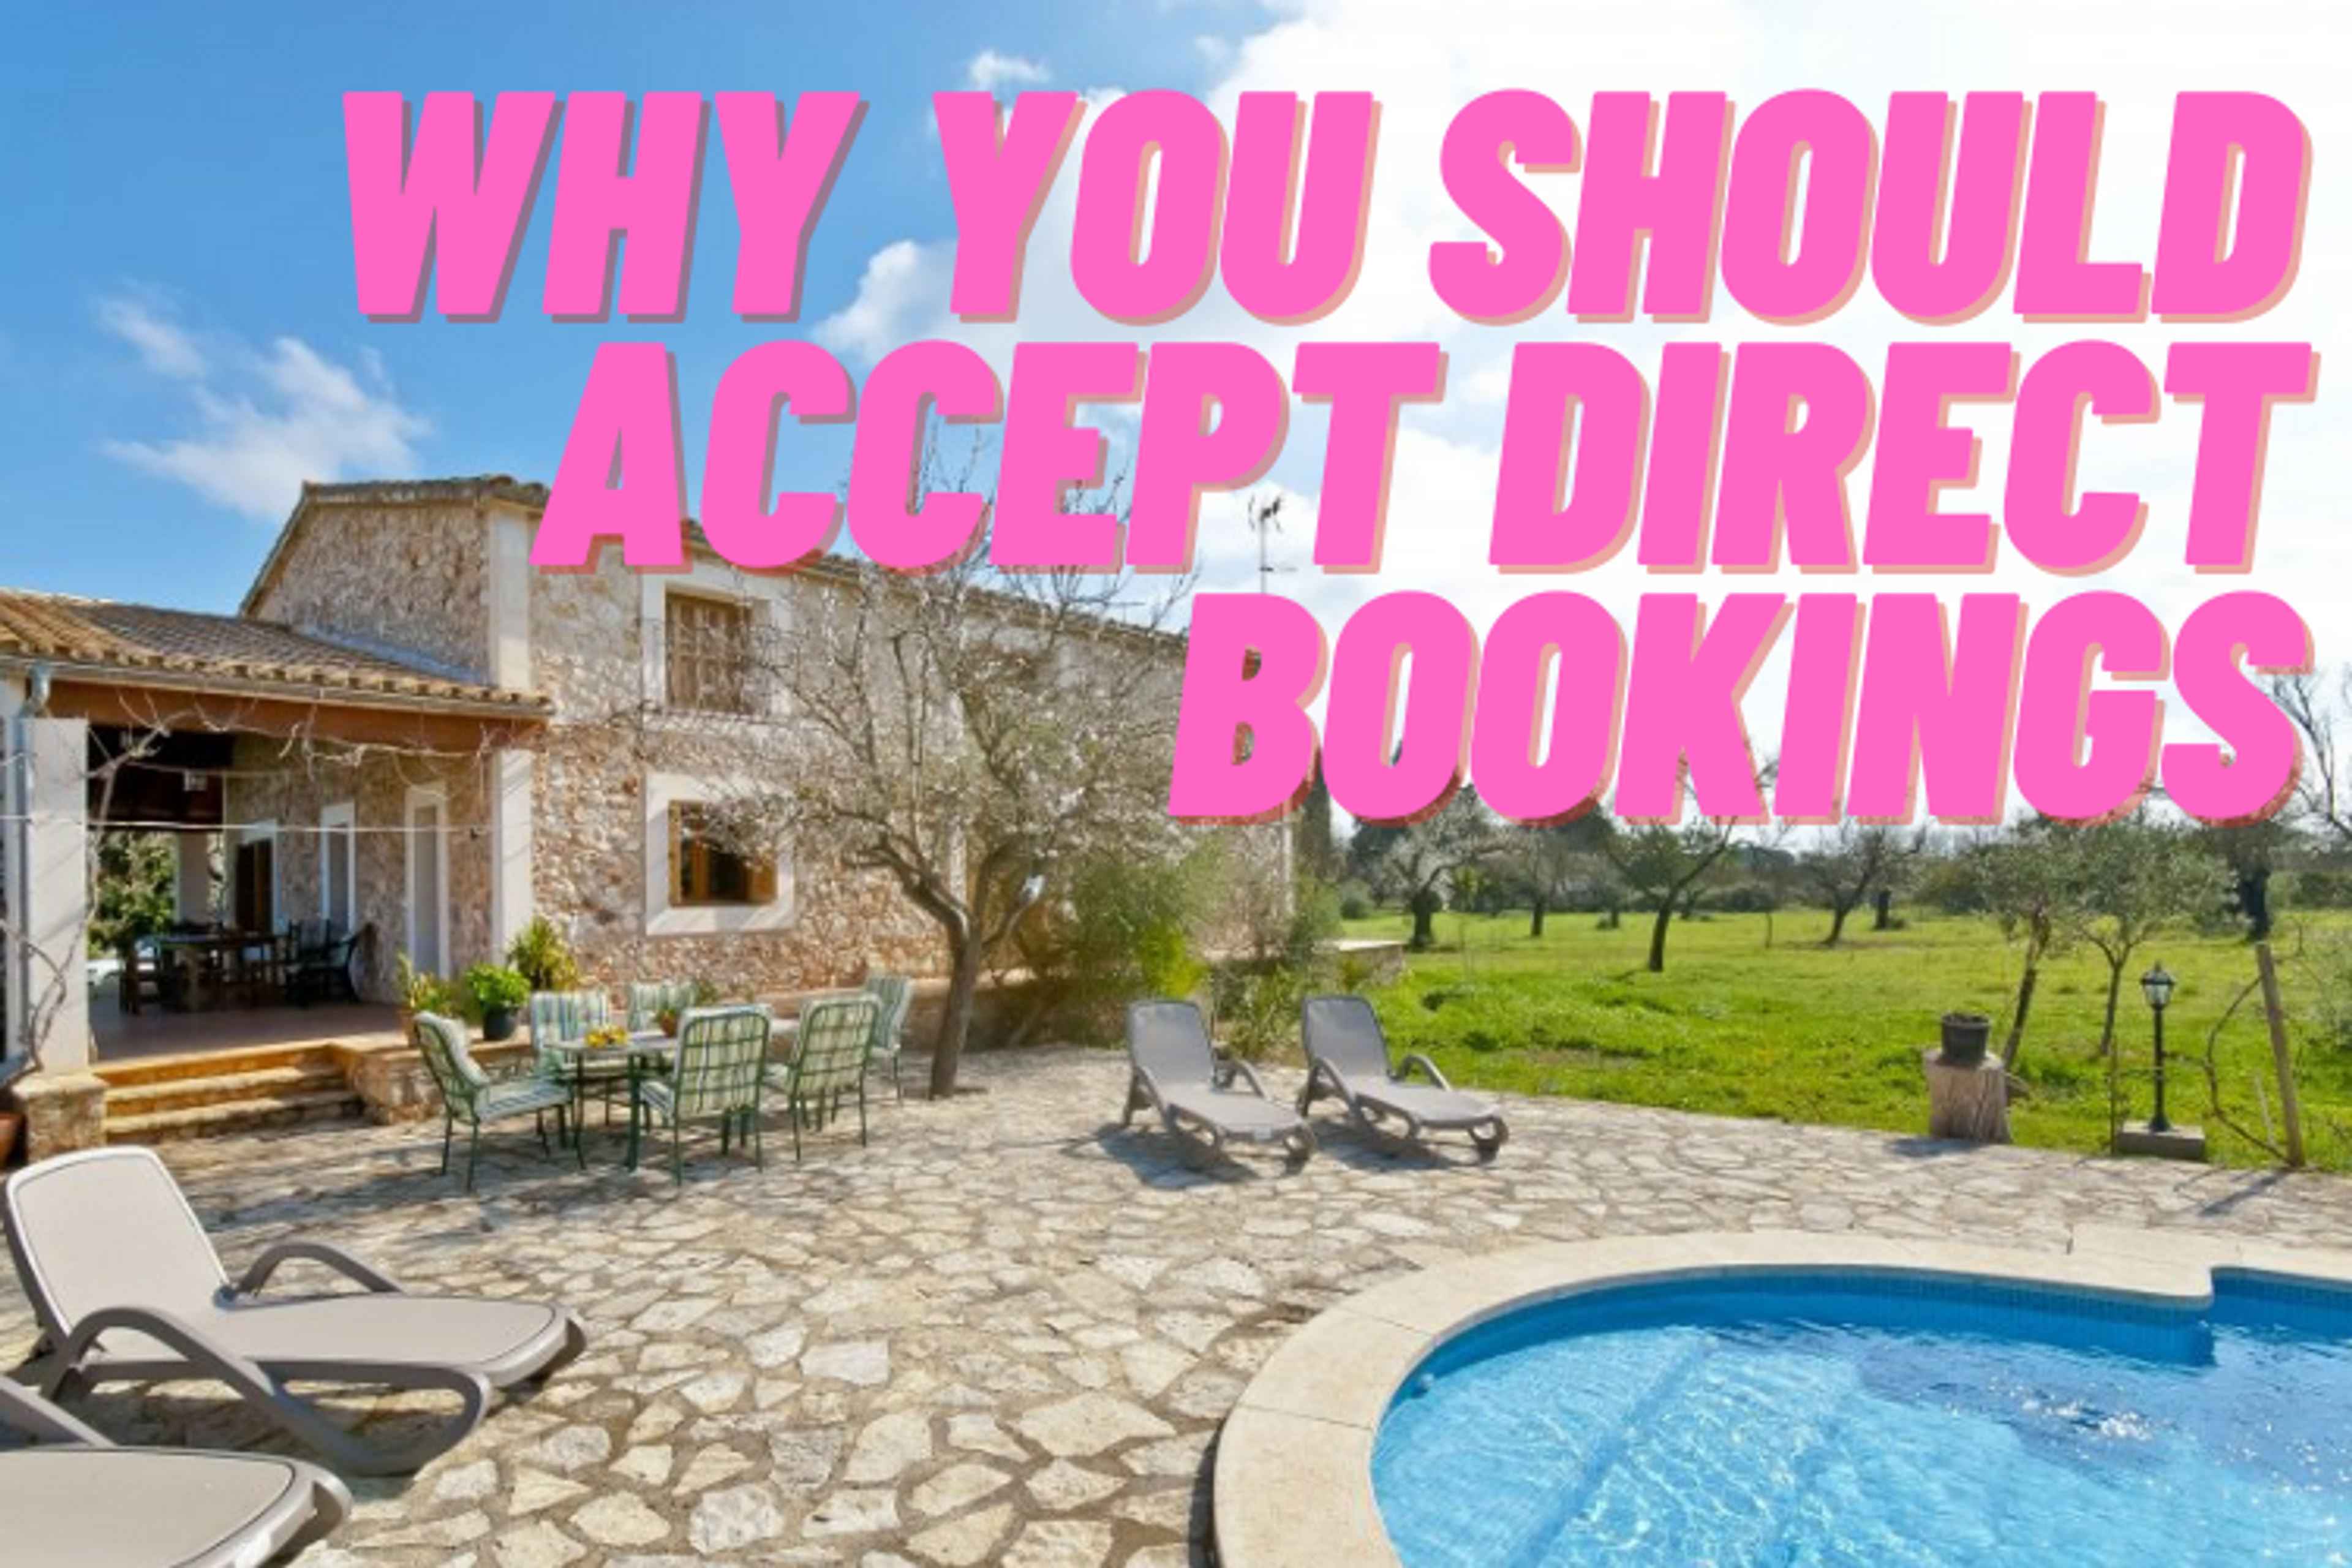 Why you should accept direct bookings